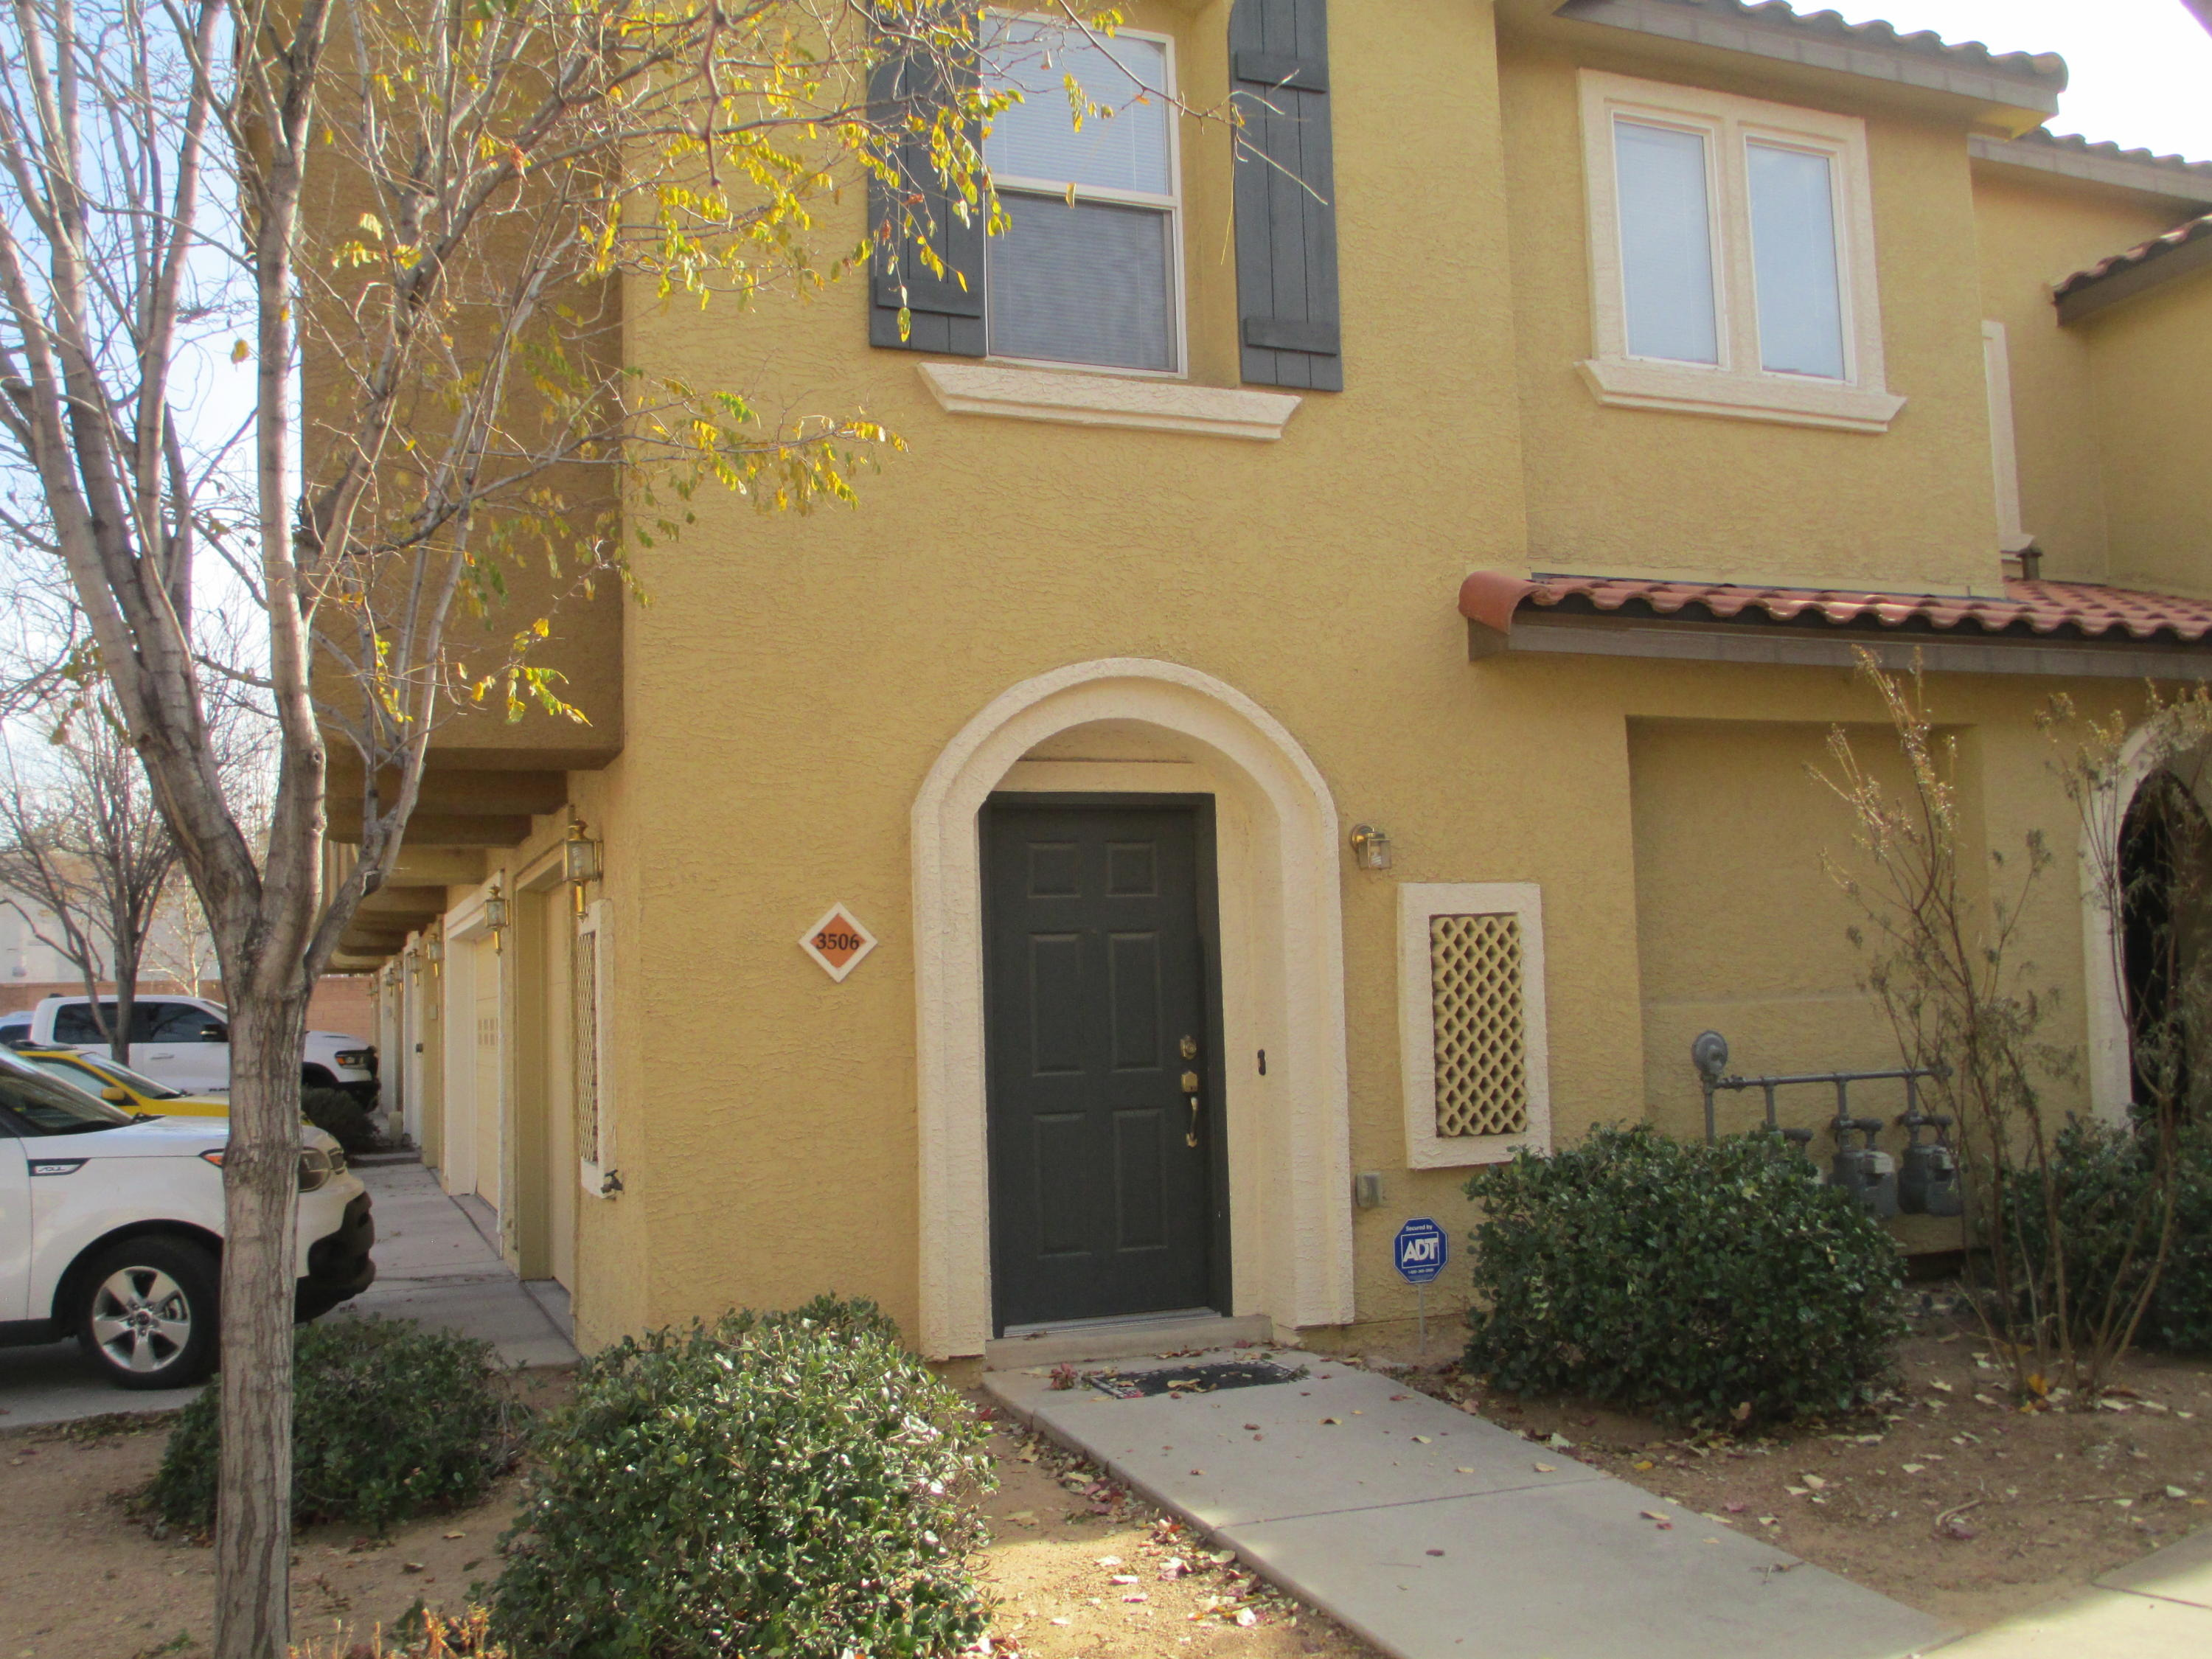 This condo is located in a desirable gated community. ''The Villas''. 2 Bedroom 2 full baths. All living space on 2nd floor. Open floor plan. Kitchen has maple cabinets, pantry, SS appliances. Gas stove, DW, Fridge w/H2O in door. Large Breakfast bar. Balcony off dining area. Good size living area. Ceiling fans in living and Master BR. Spacious master w/garden tub, double sinks  and walk in closet. Good size second bedroom right across hall from  2nd full bath.  Lots of great light. Tankless H2O heater w/ washer and dryer included. CFA and refrigerated air. 1 car heater/finished garage w/opener. HOA monthly includes water, clubhouse, swimming pool, hot tub, basketball court, playground, security gates, and maintained landscaping. Great location, close to downtown, uptown, and interstate.